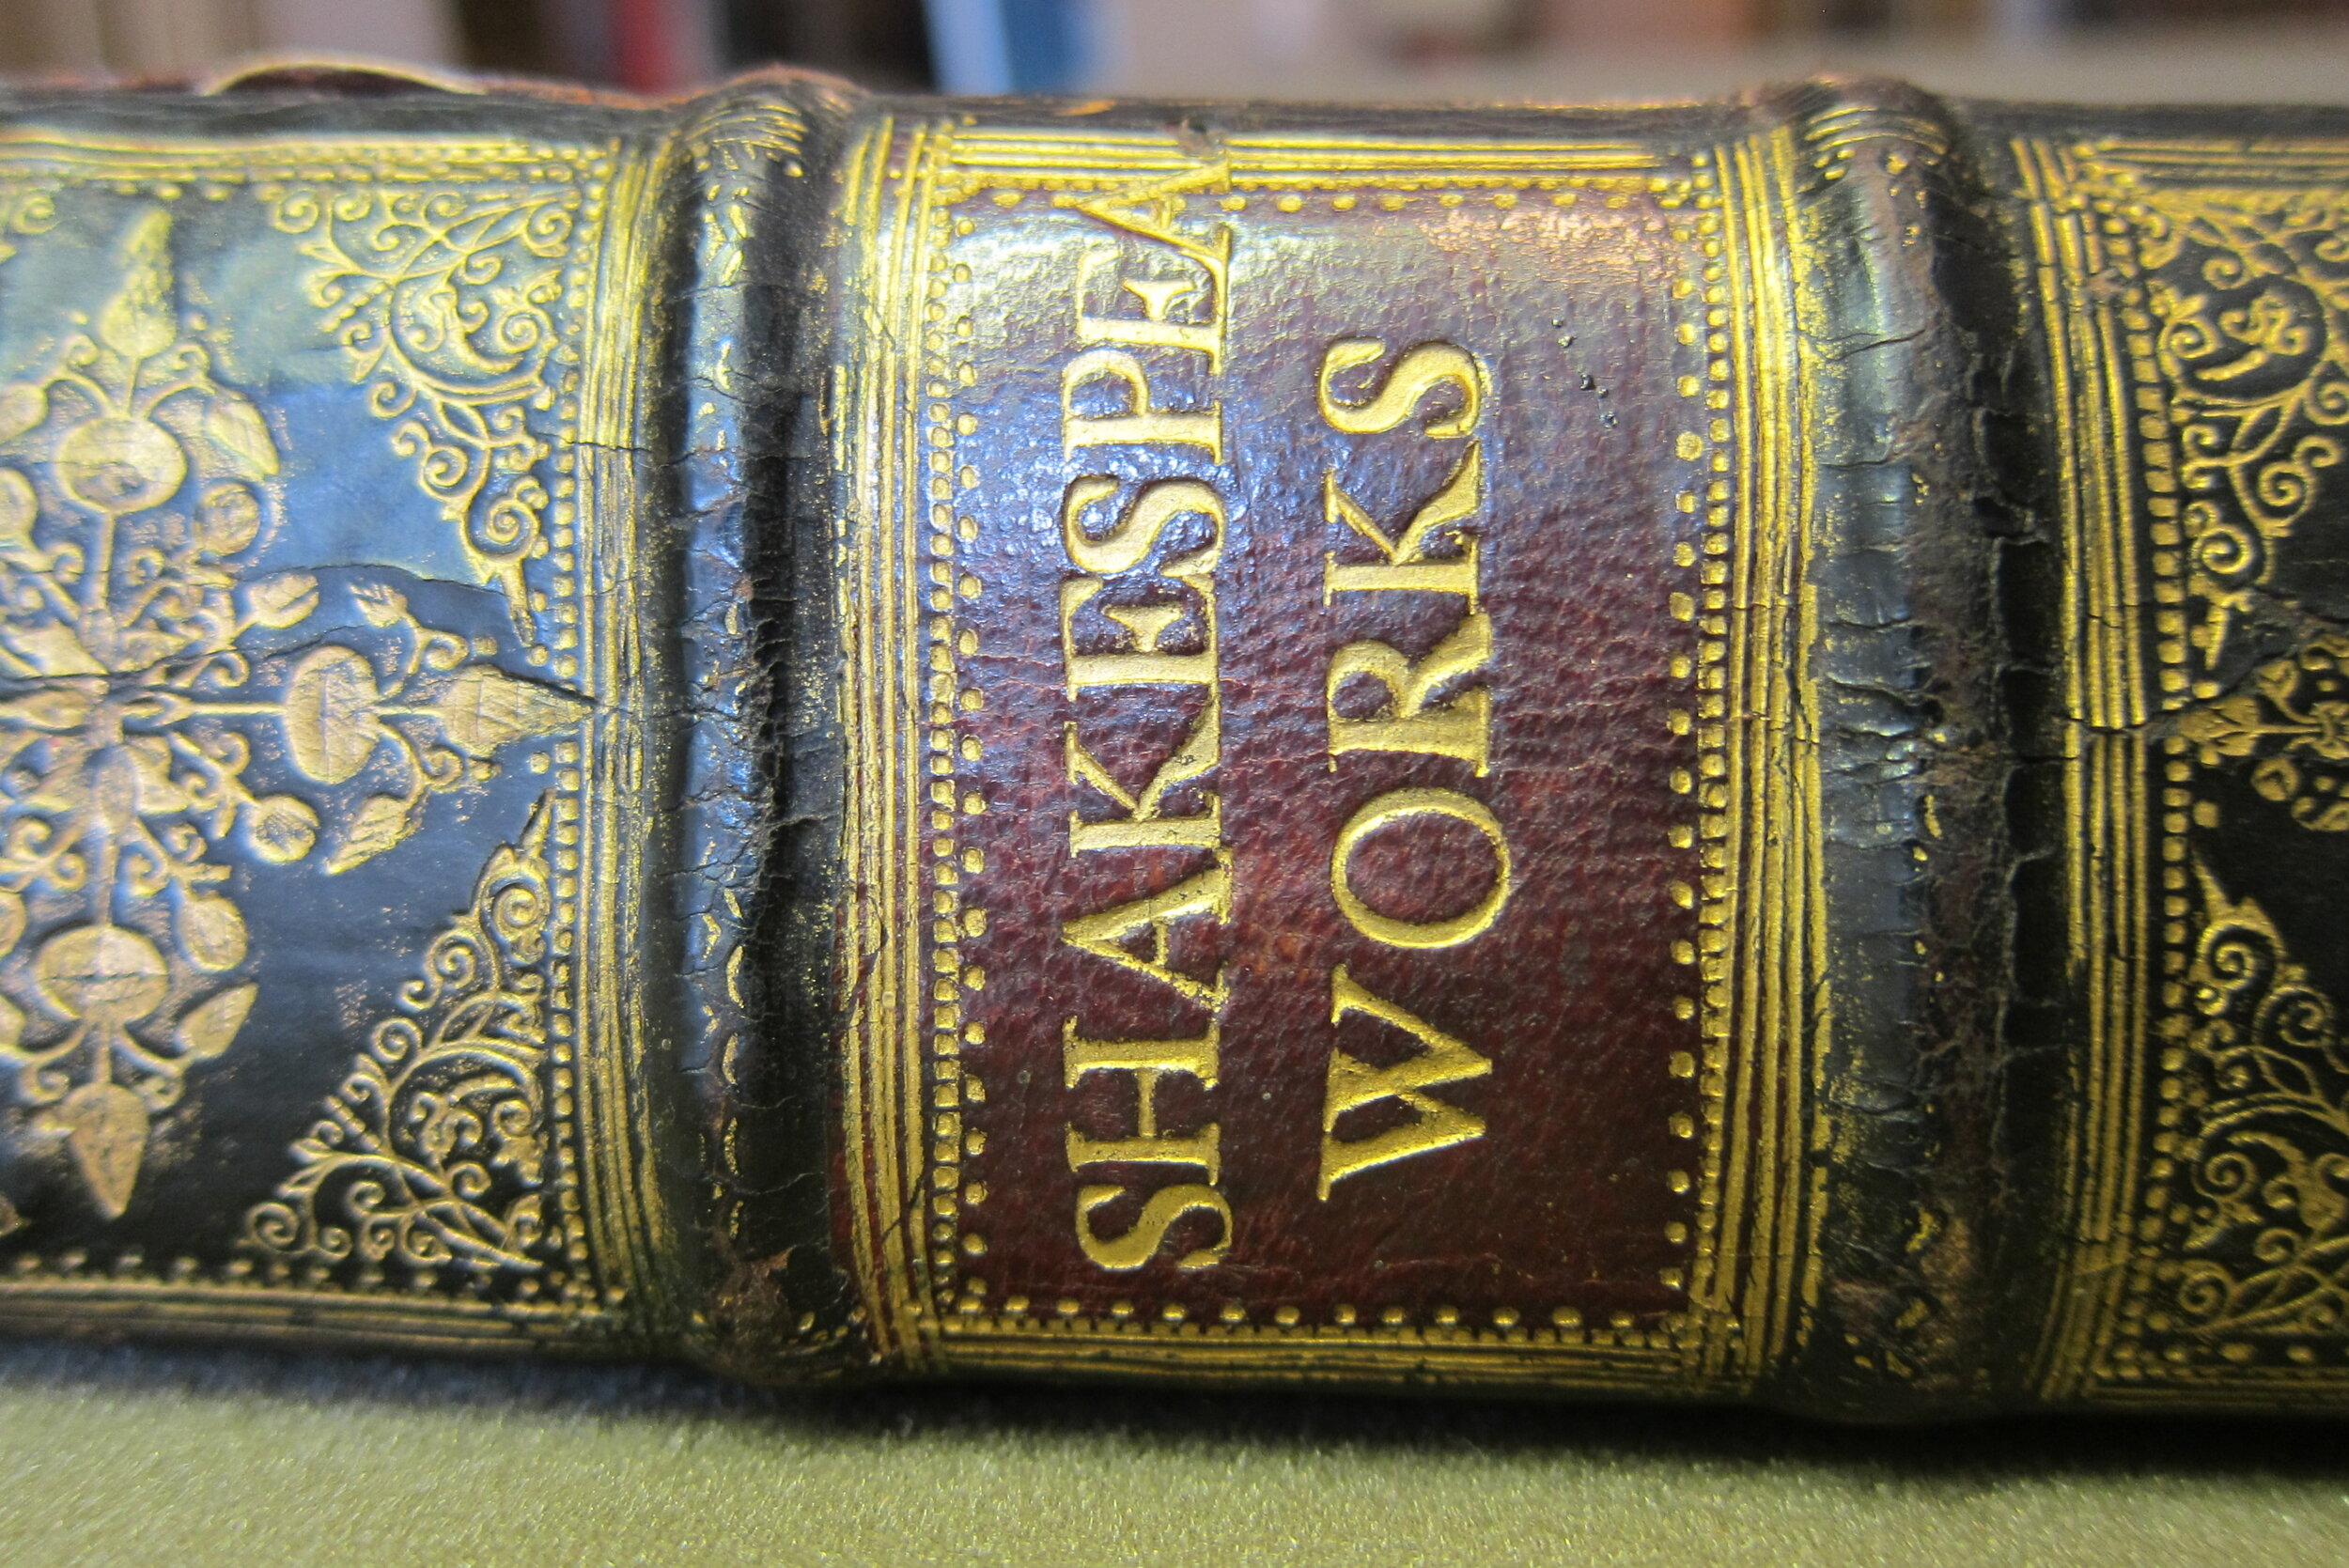 The spine of the book's current binding, which dates to the late seventeenth century. [Image reproduced with kind permission of the Free Library of Philadelphia.]